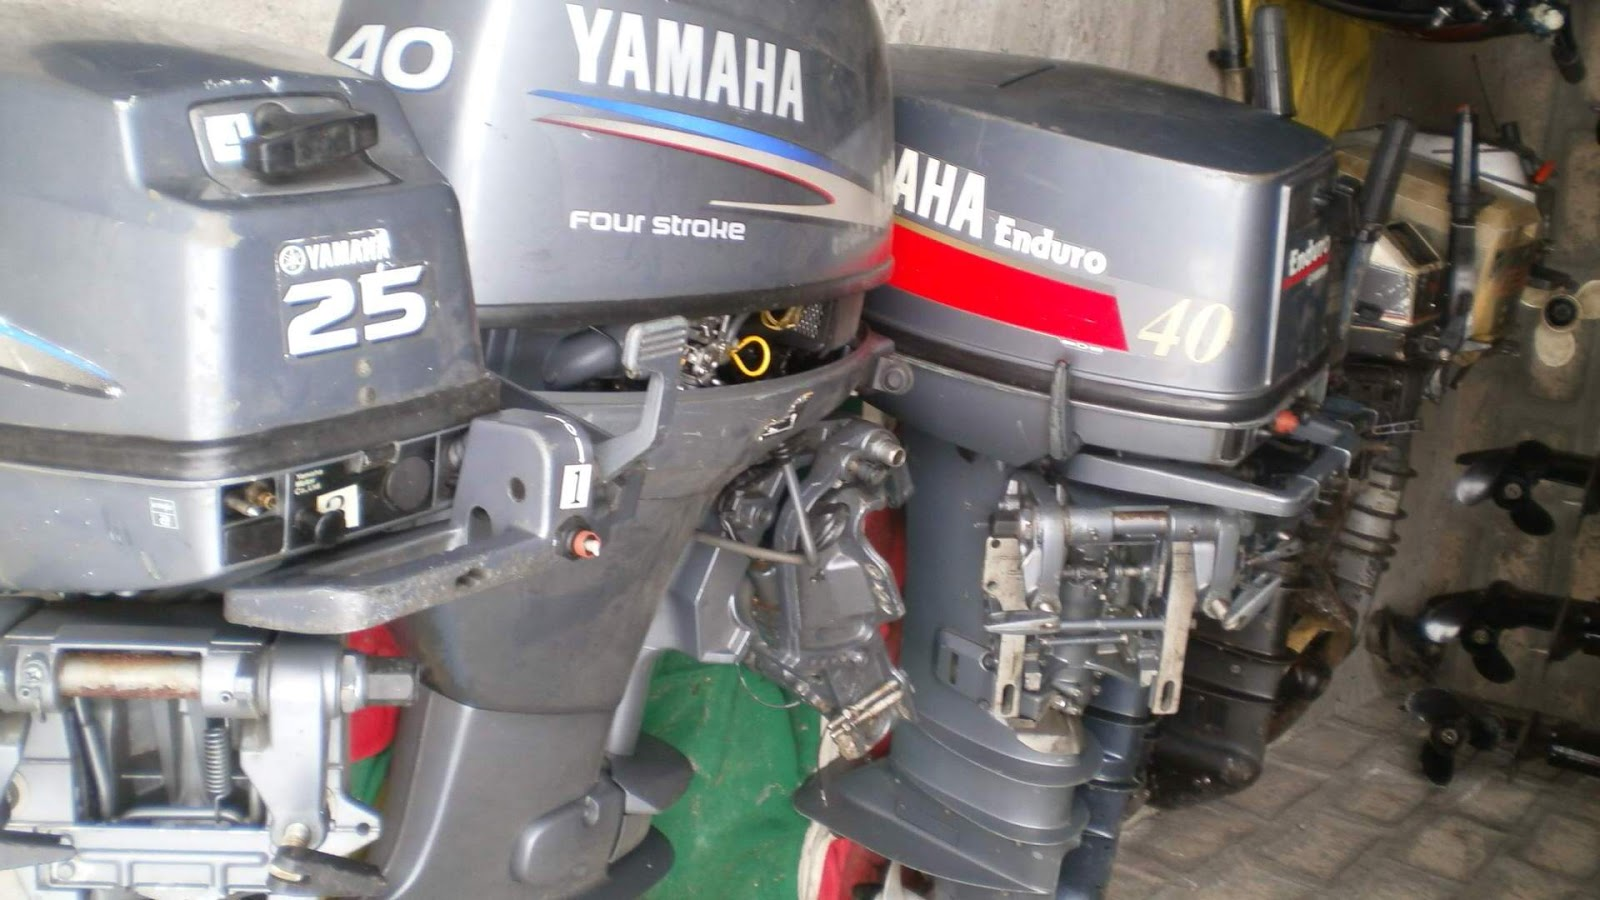 Yamaha Outboard Boat Engines Outboard Motor Engines 40